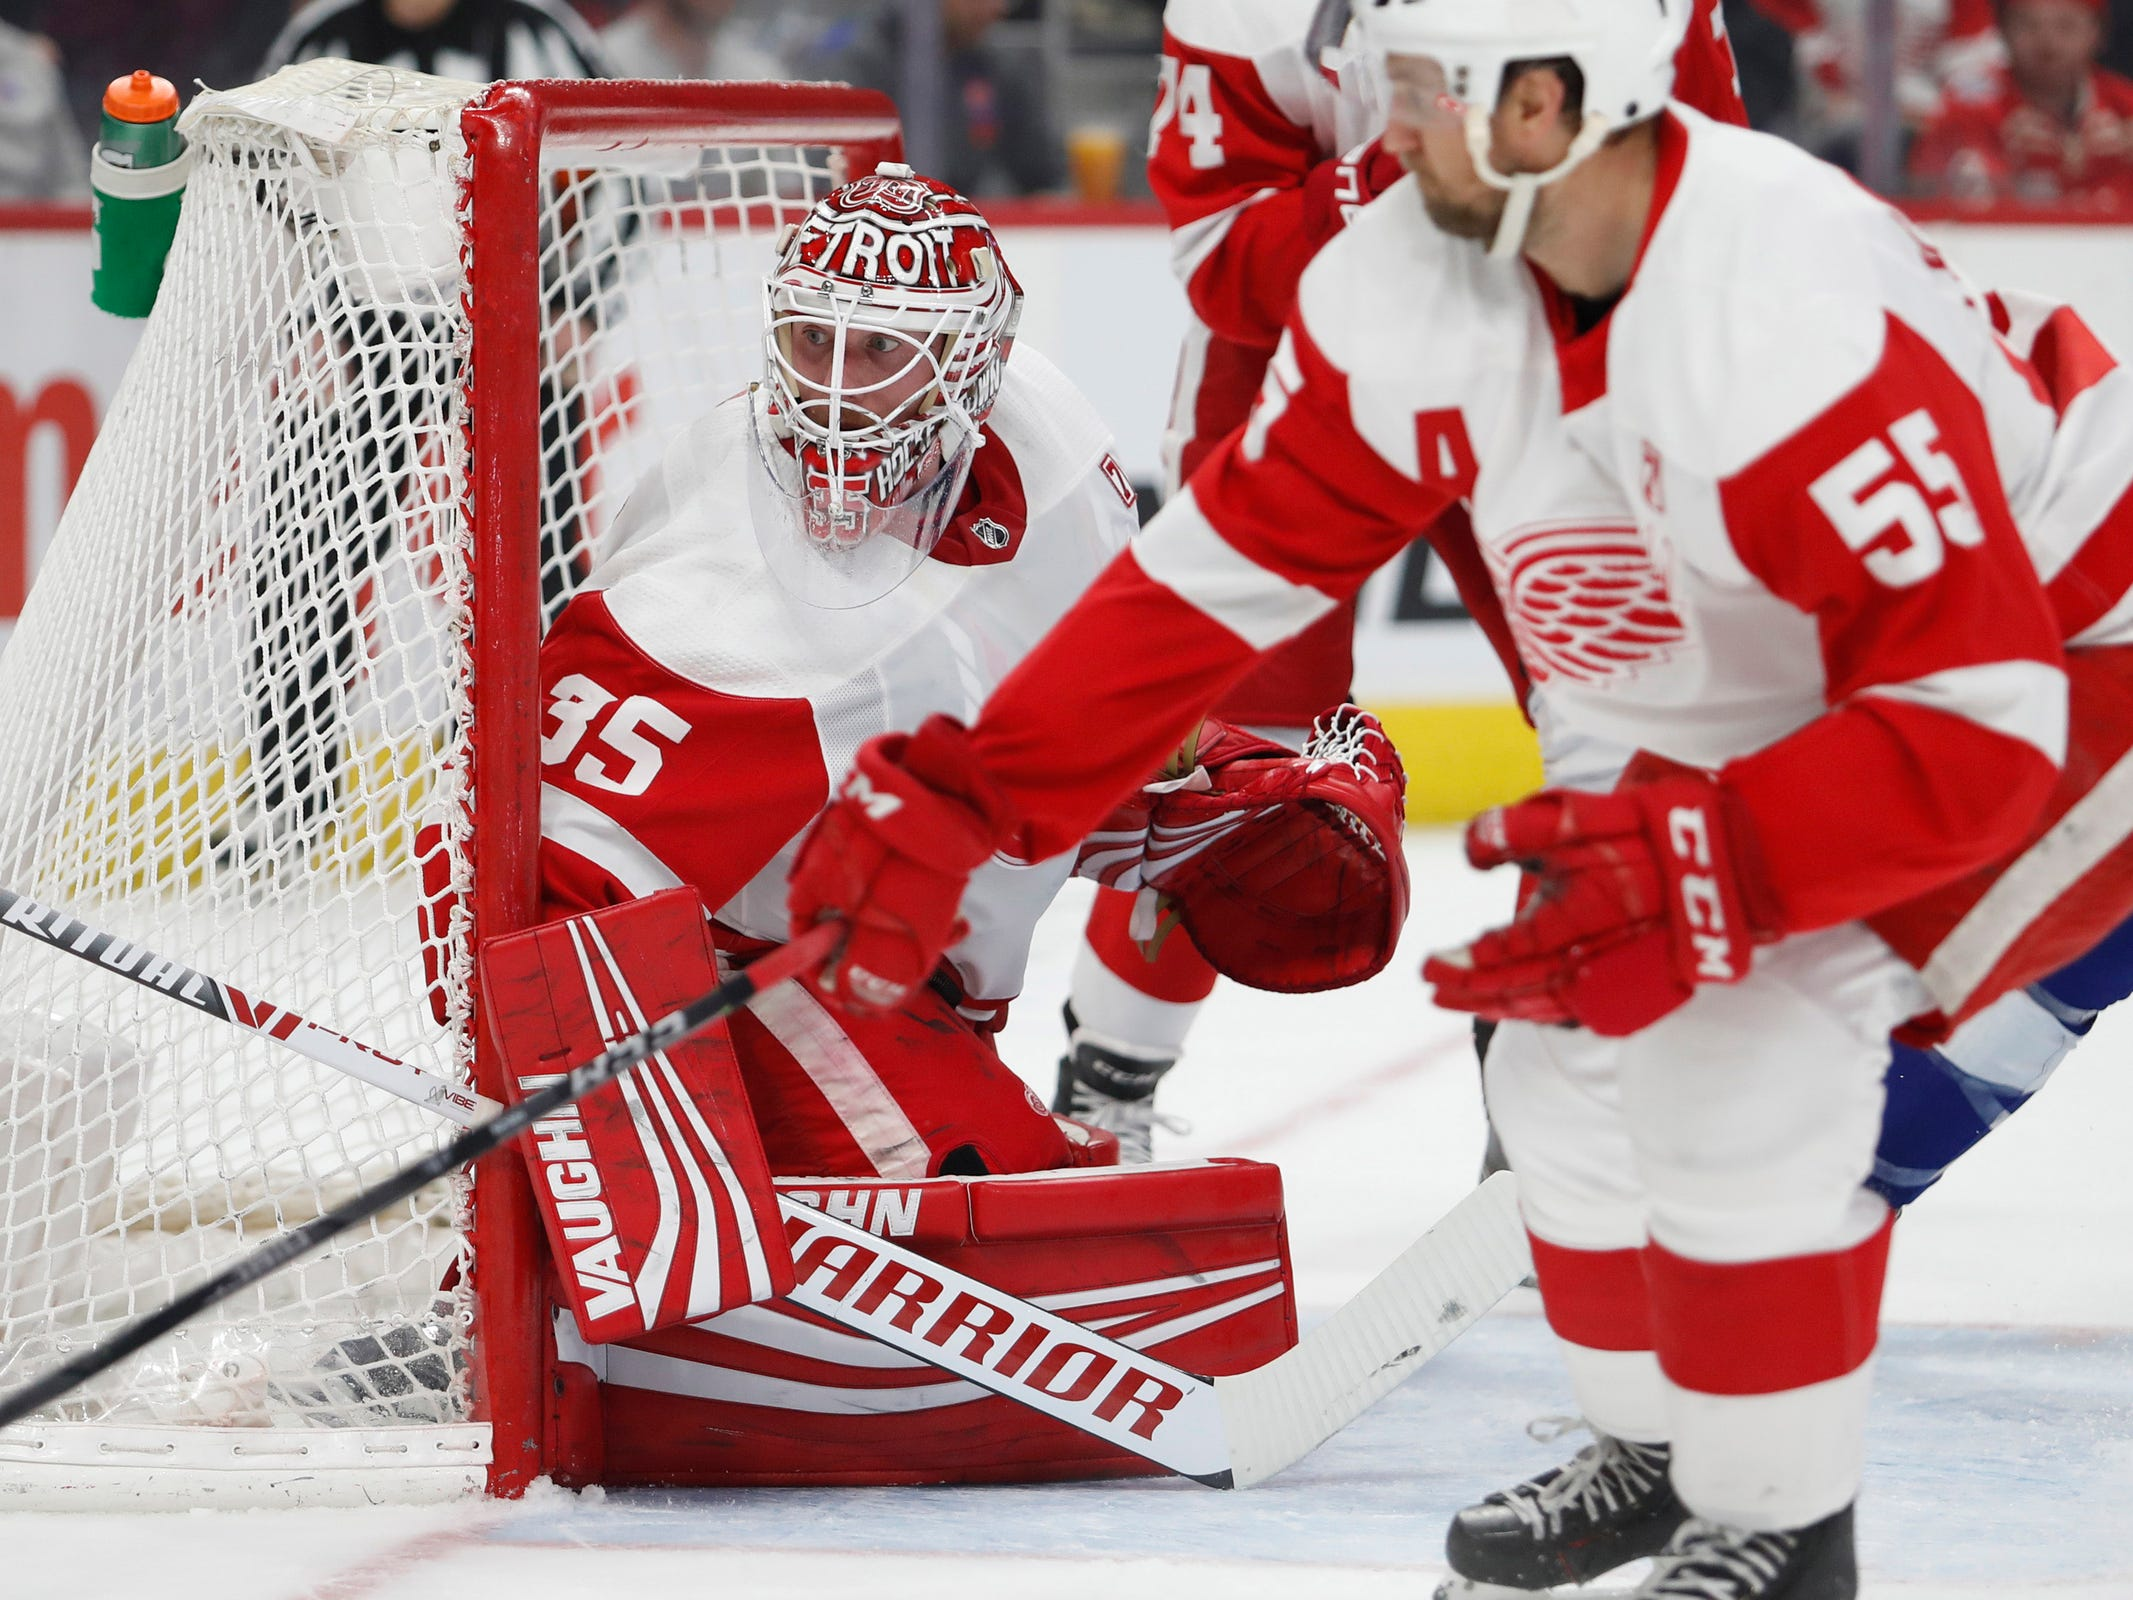 Detroit Red Wings goaltender Jimmy Howard (35) protects the net during the first period against the Tampa Bay Lightning at Little Caesars Arena on Thursday, March 14, 2019, in Detroit.